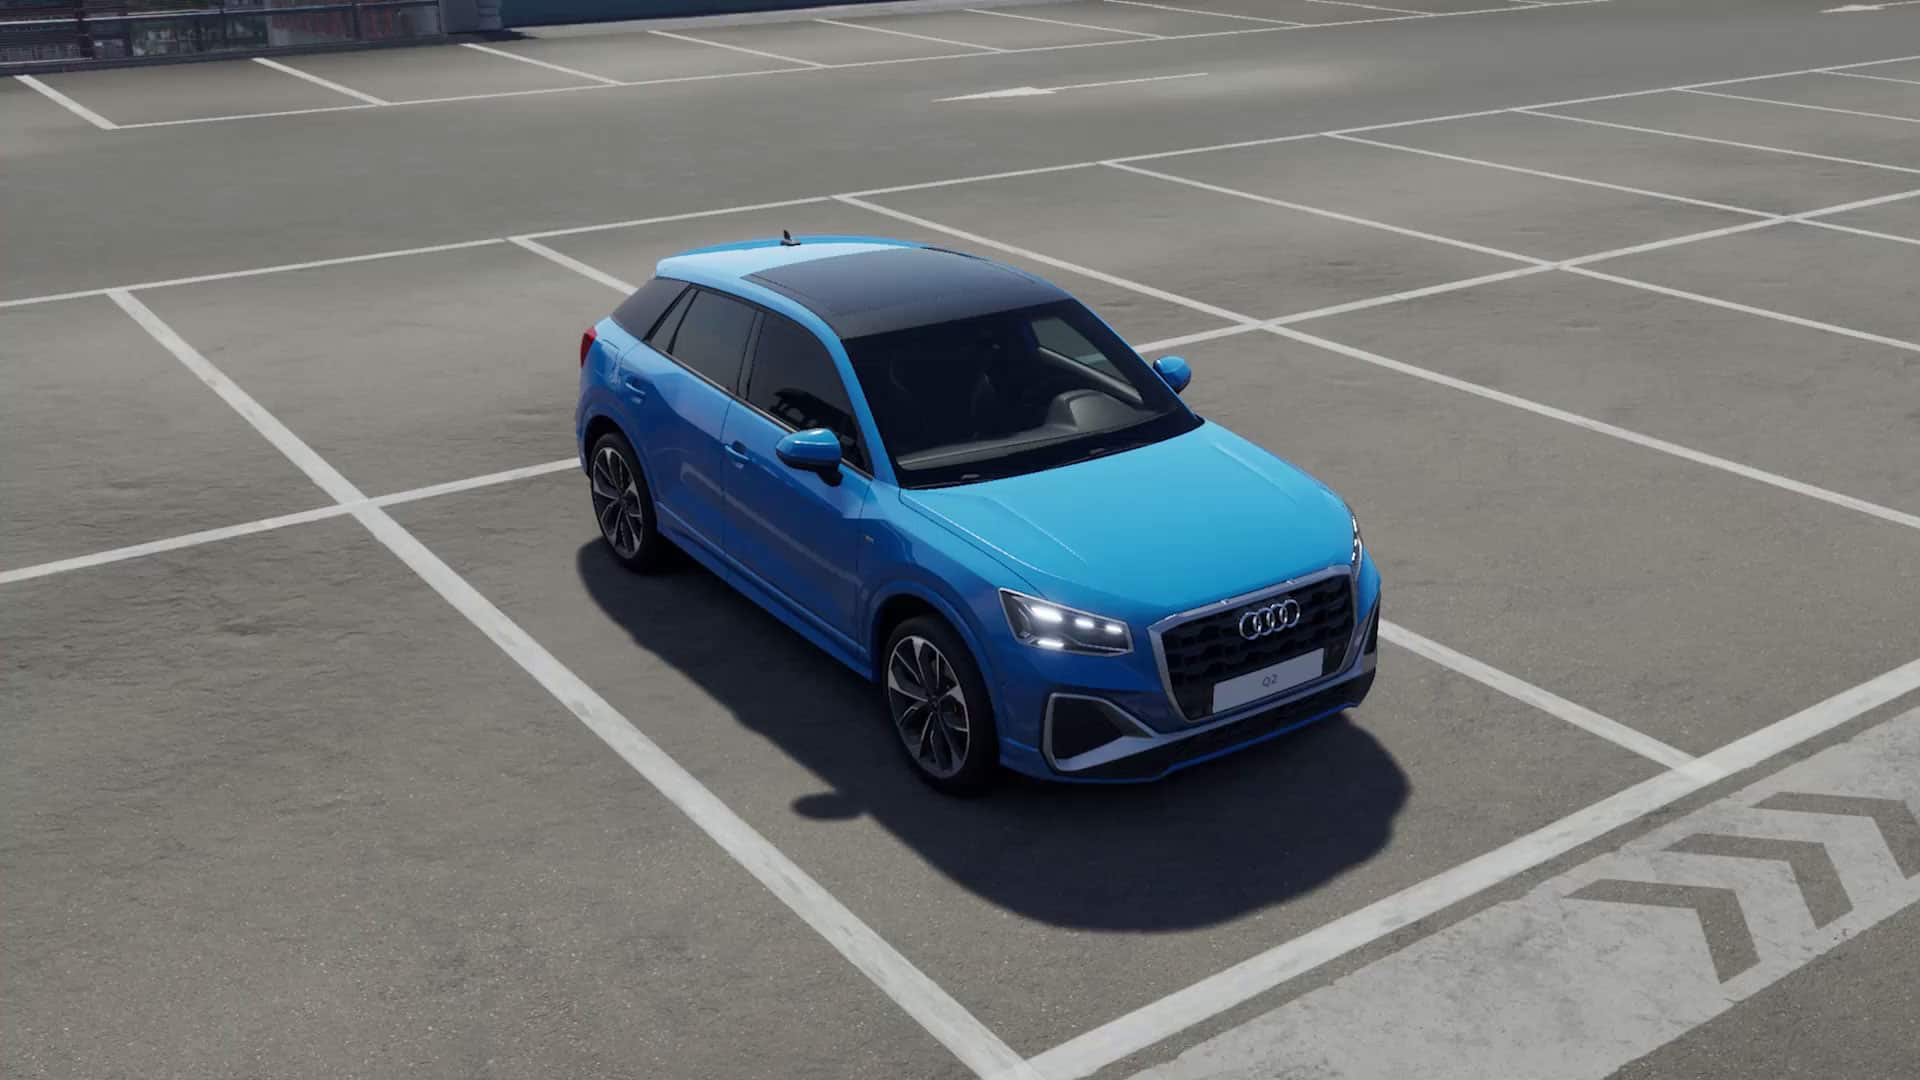 360 degree view of the Audi Q2